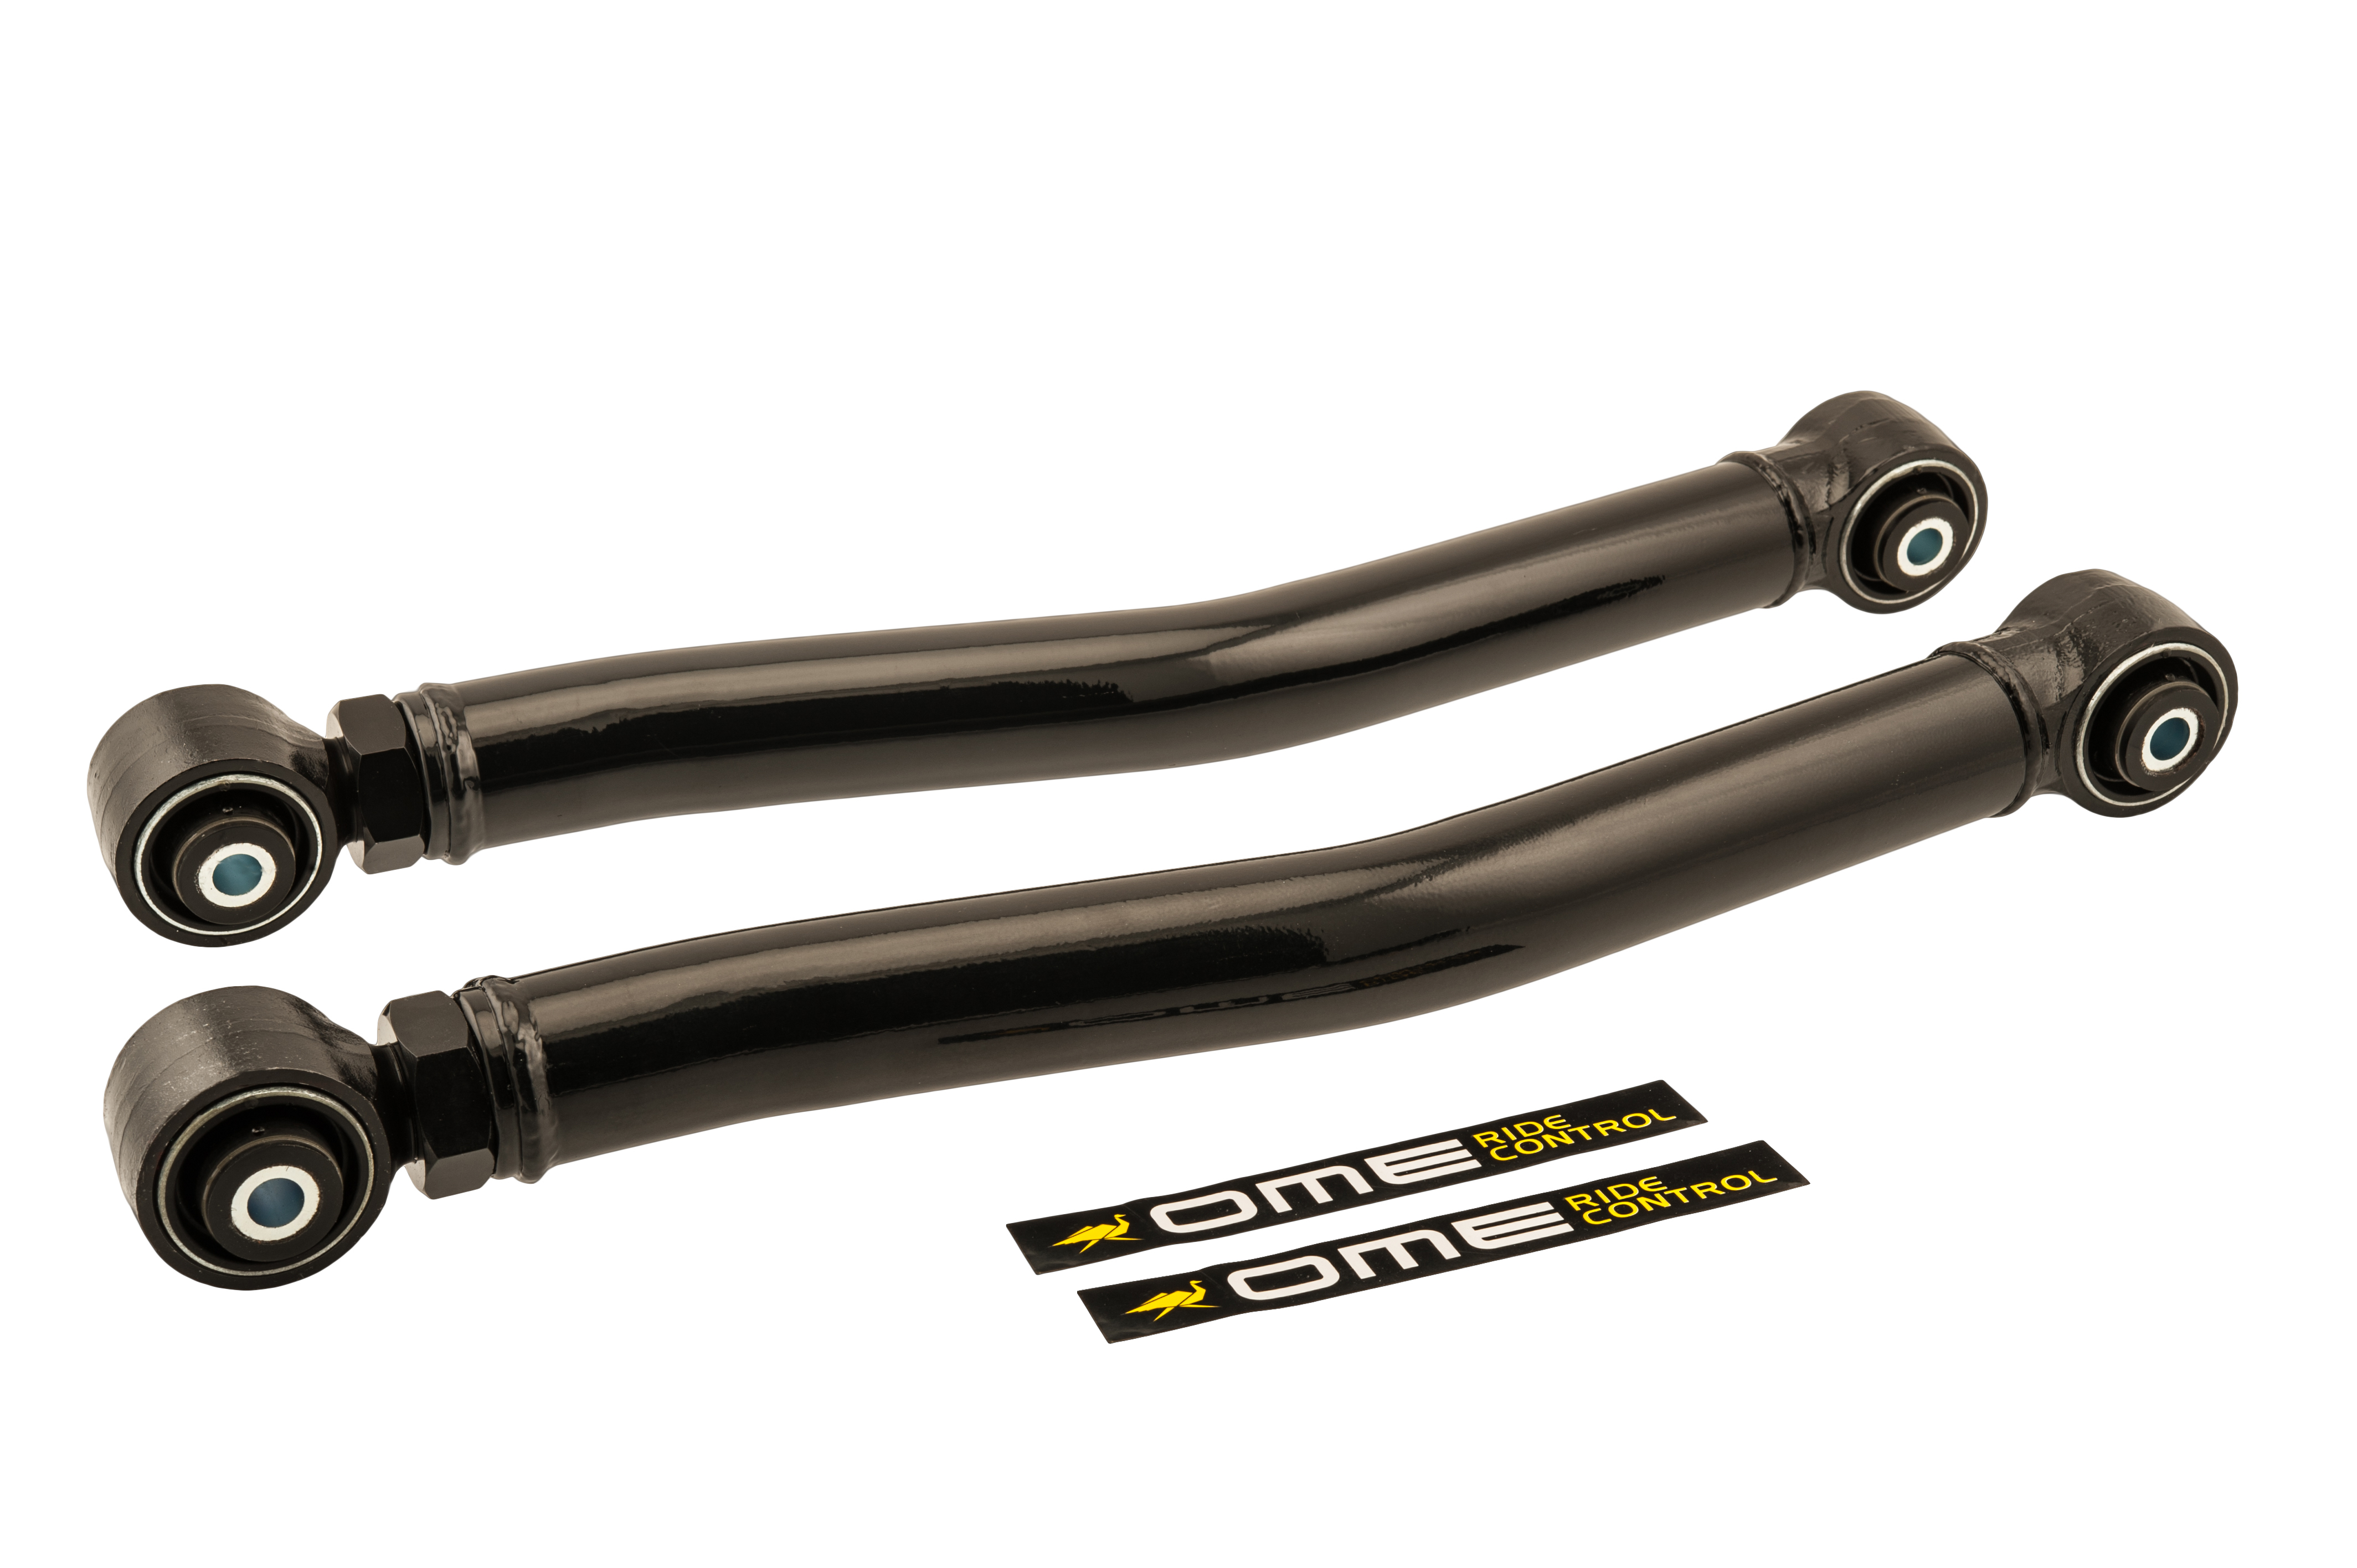 OME Rear Lower Control Arms - JK Wrangler